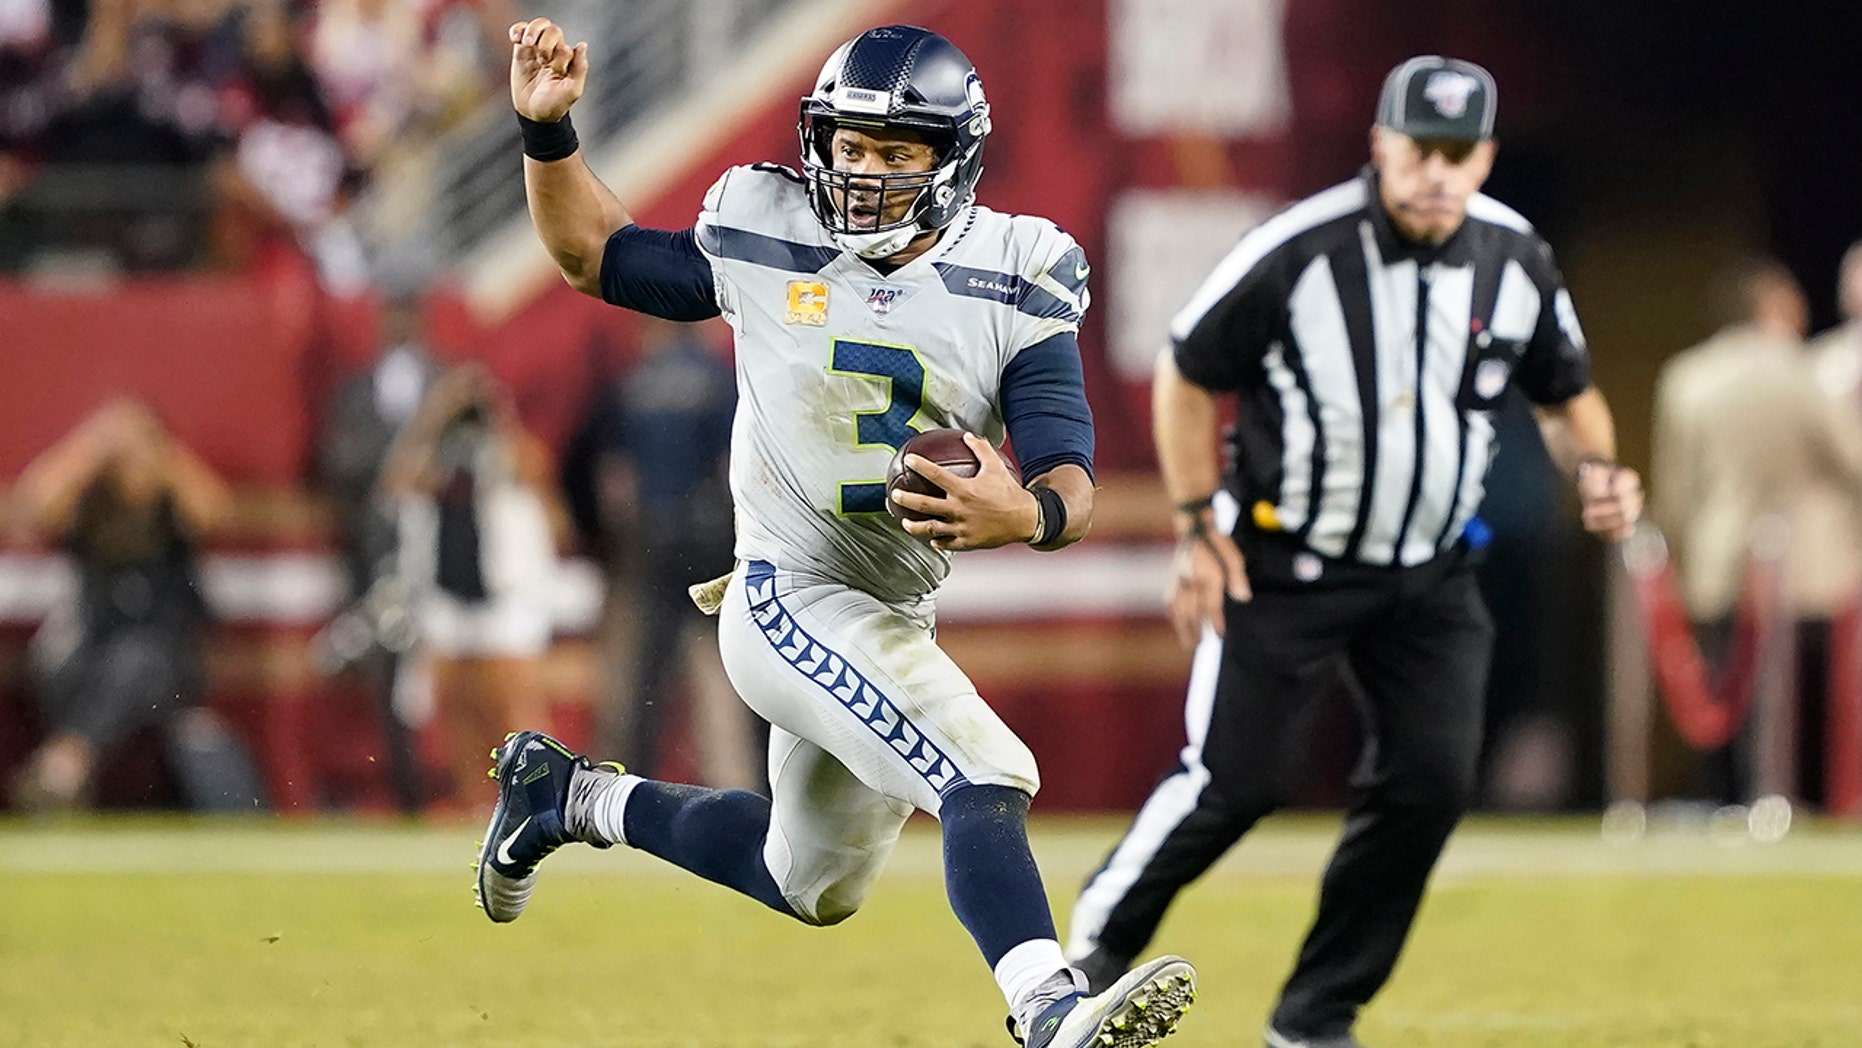 Seattle Seahawks quarterback Russell Wilson (3) runs a round opposite a San Francisco 49ers during a second half of an NFL football diversion in Santa Clara, Calif., Monday, Nov. 11, 2019. (AP Photo/Tony Avelar)